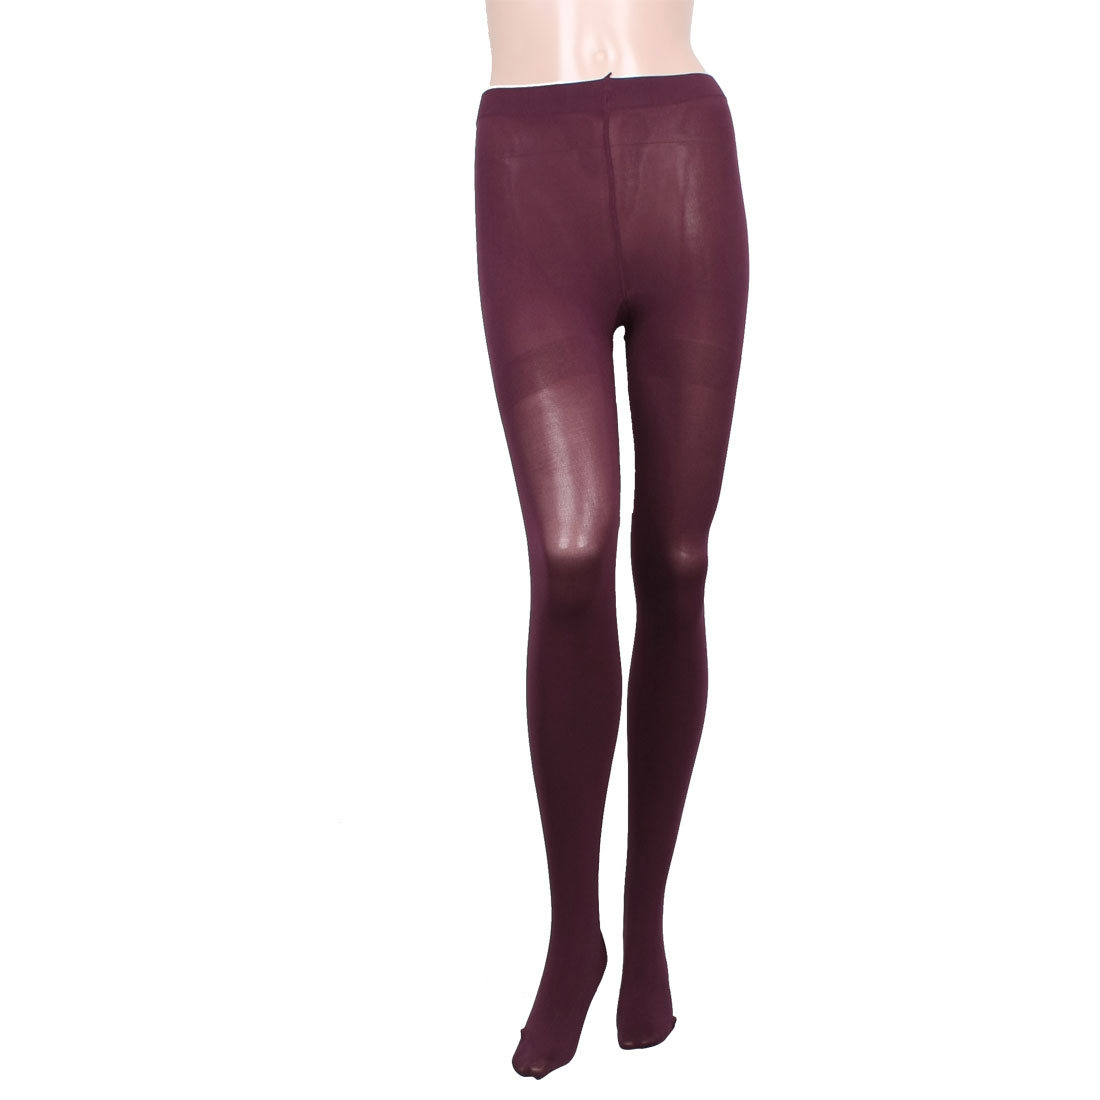 Women Burgundy Stretch Nylon Tights Leggings Pantyhose Stockings XS